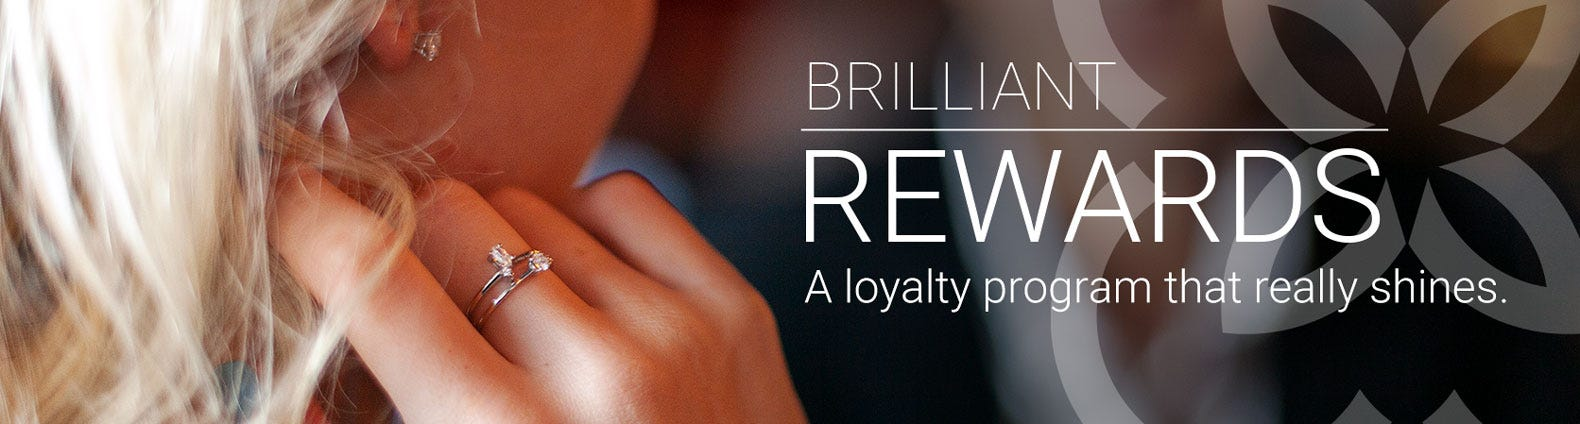 BRILLIANT REWARDS - A loyalty program that really shines.